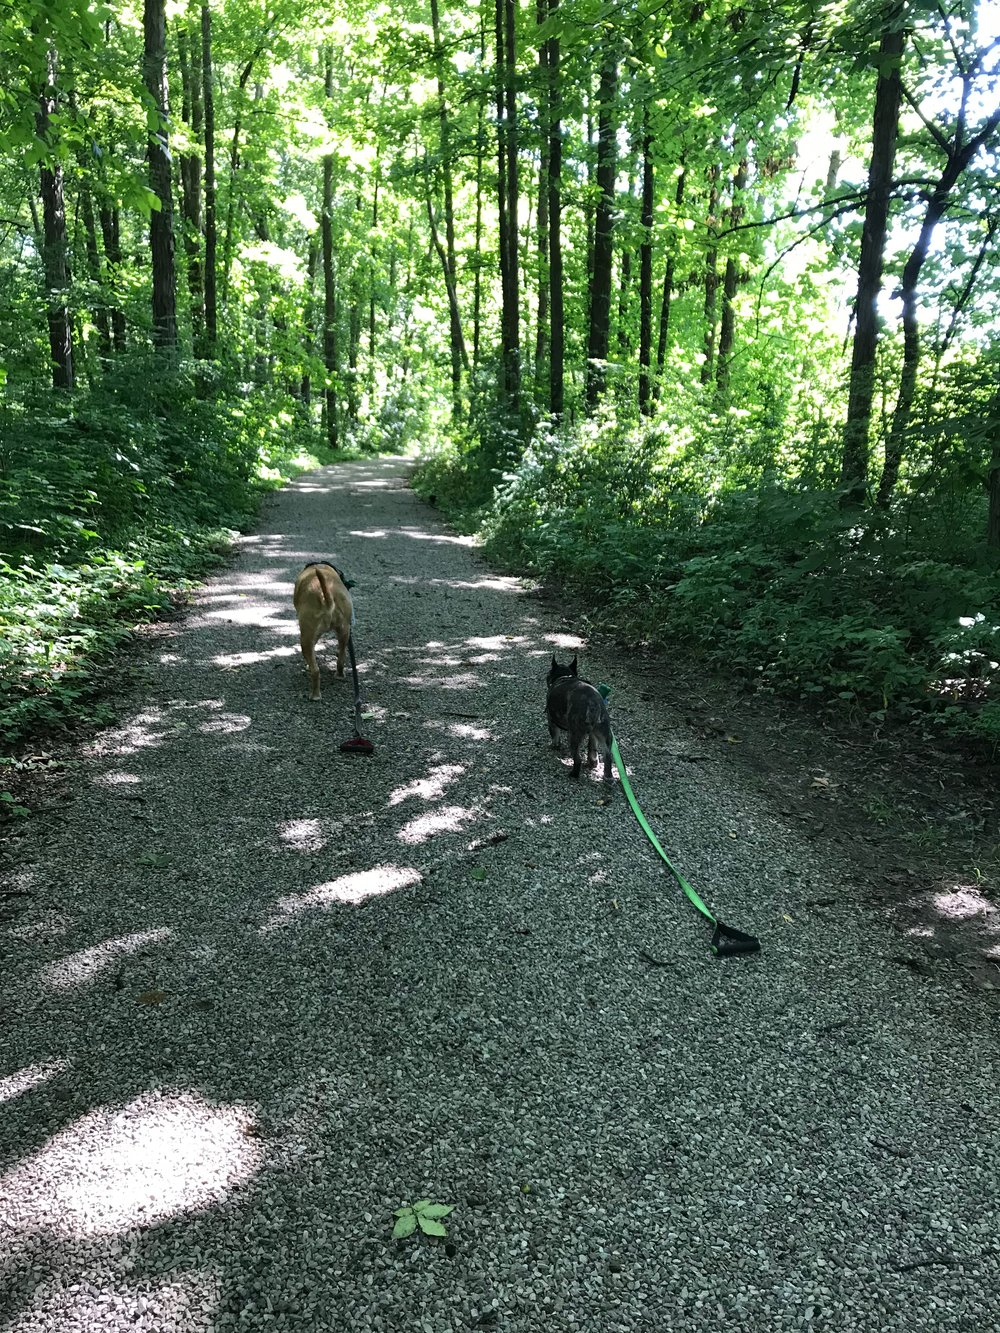 Our dogs, Callie and Koda, exploring the hiking trail near our home